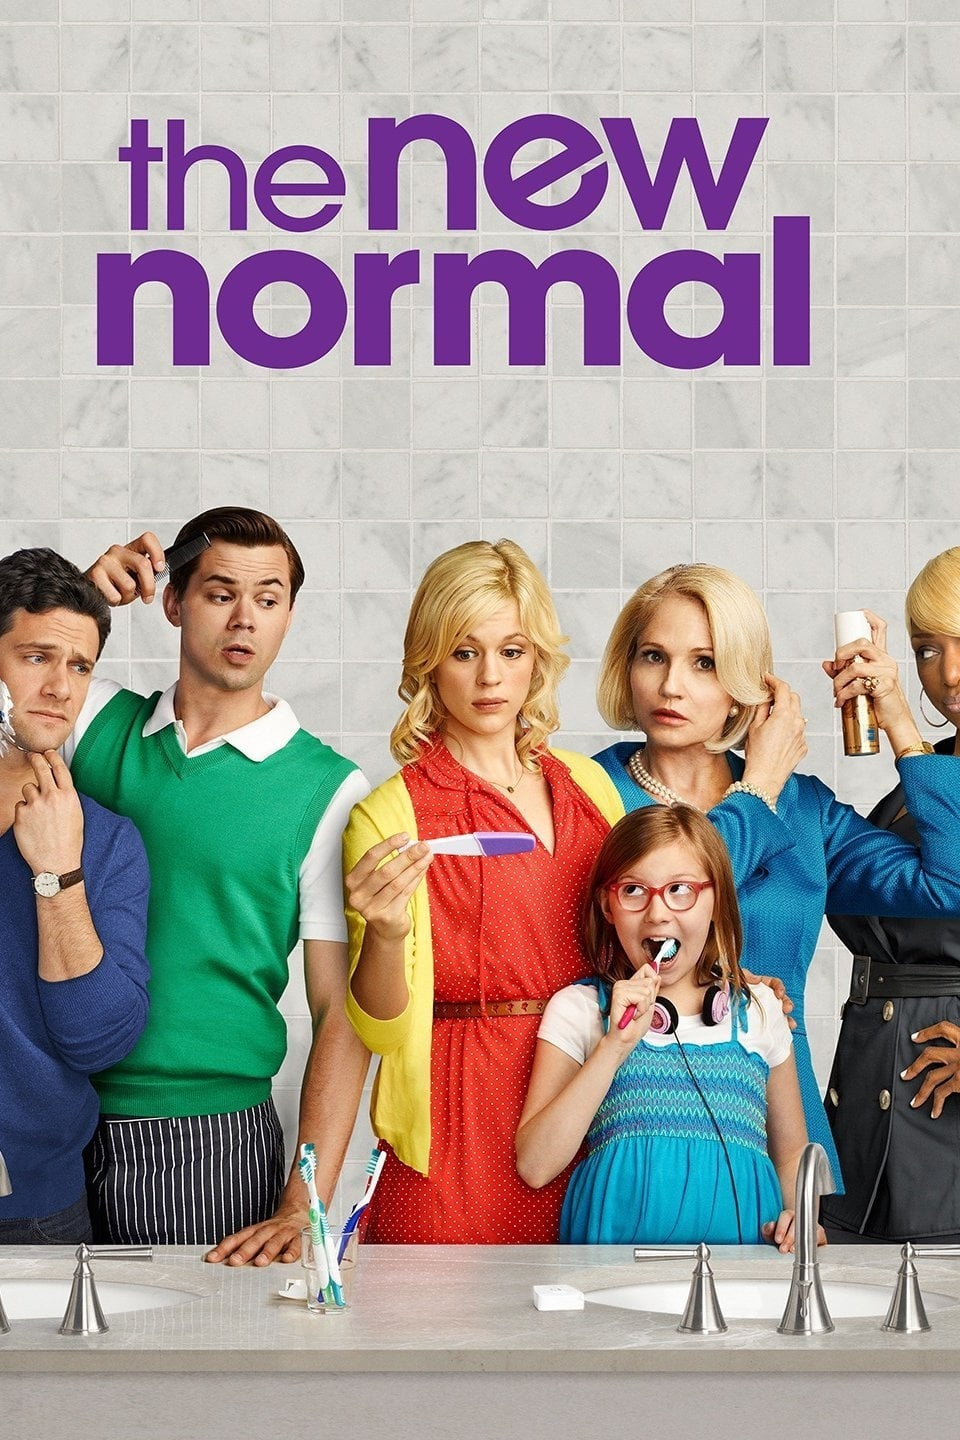 The new normal' />